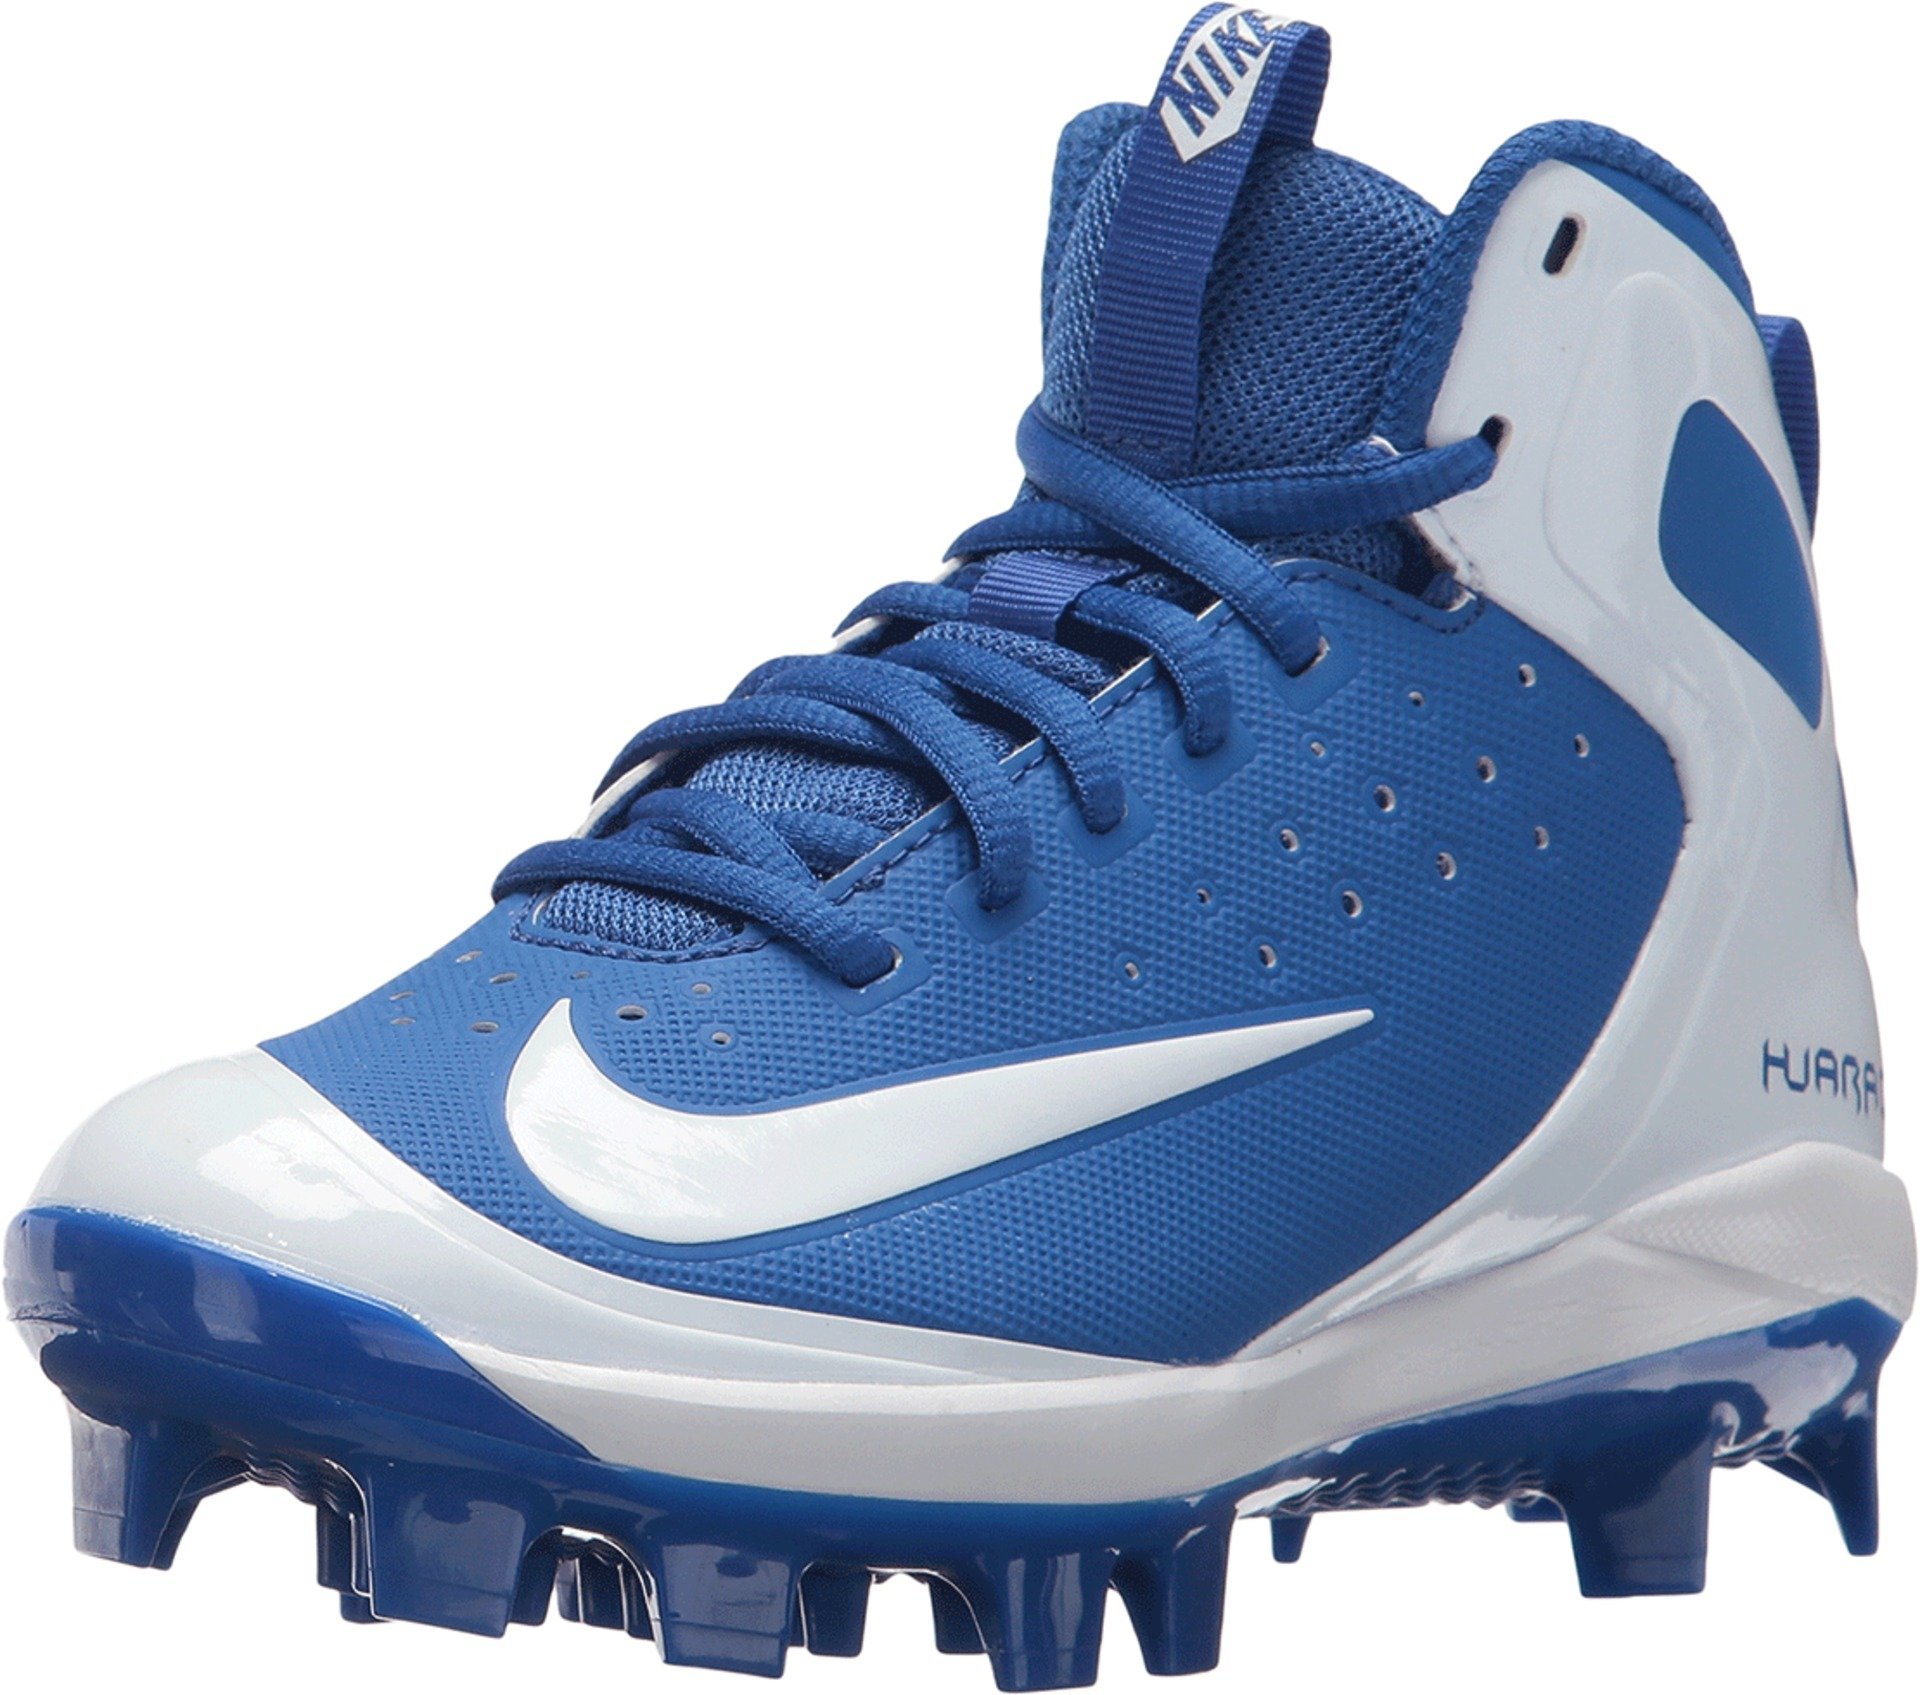 Nike Kids Alpha Huarache Pro Mid MCS Baseball Cleats; Blue/White (5.5Y M) by Nike